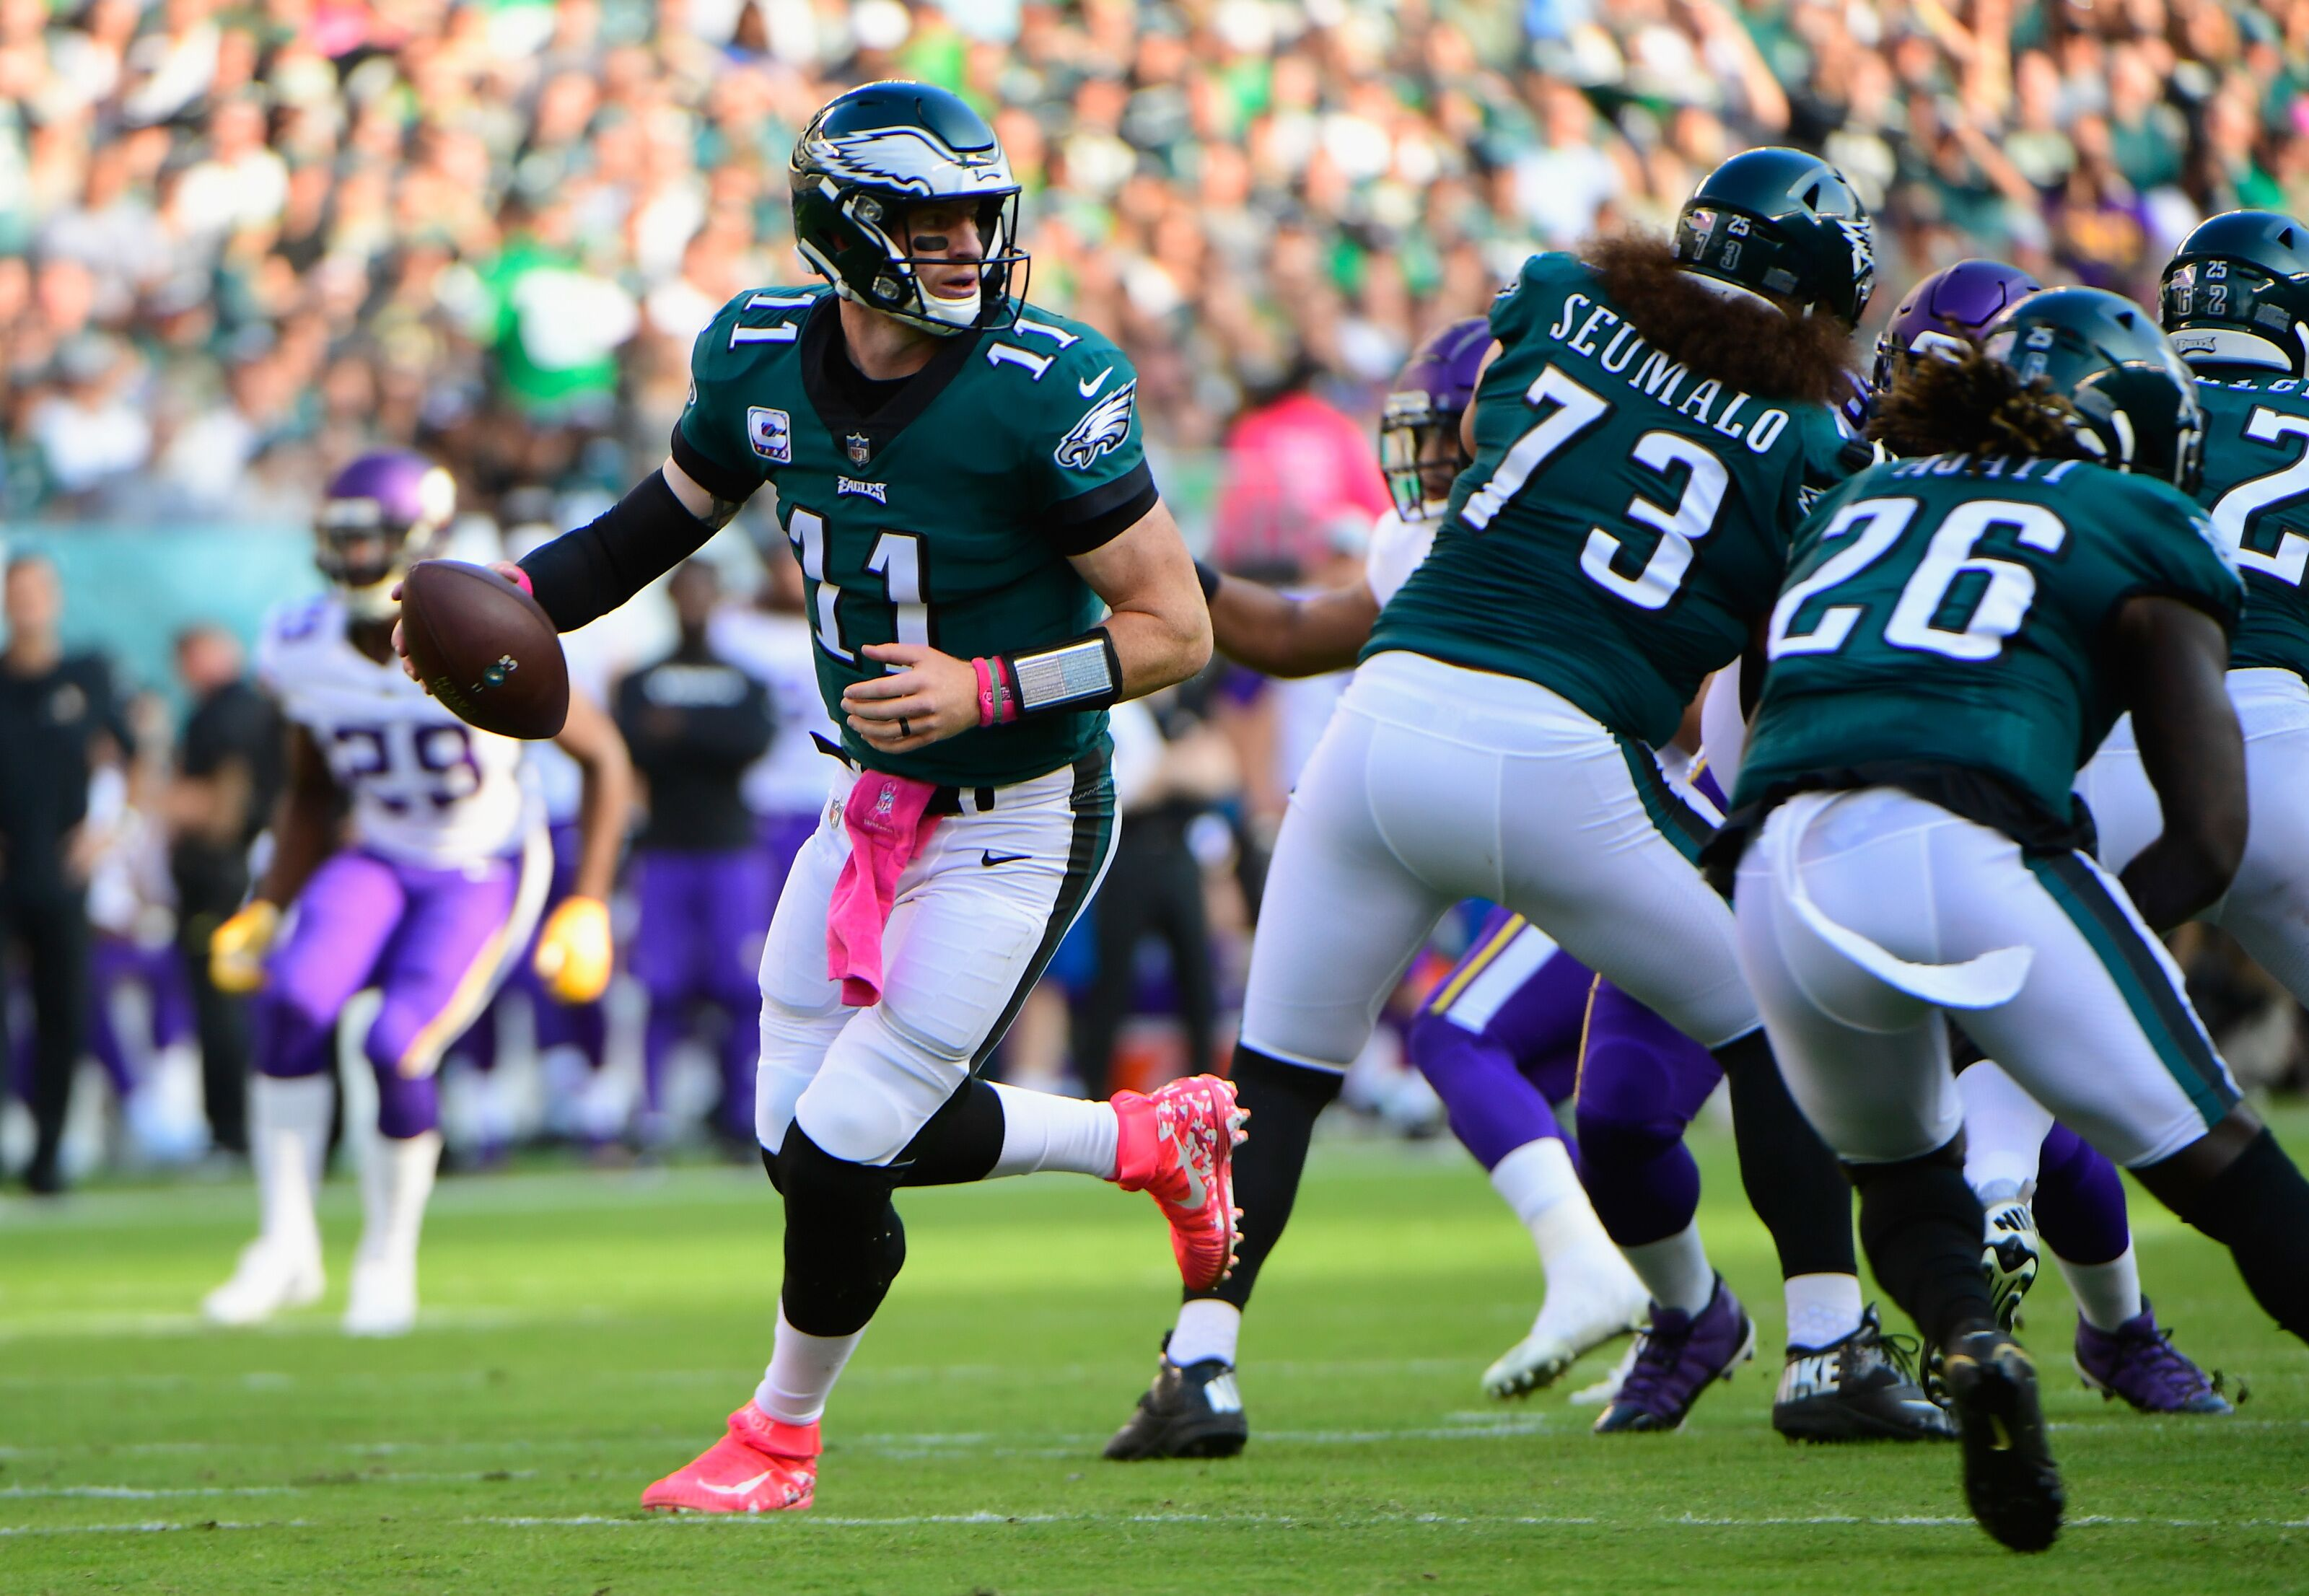 How much pressure are Philadelphia Eagles under in 2019?